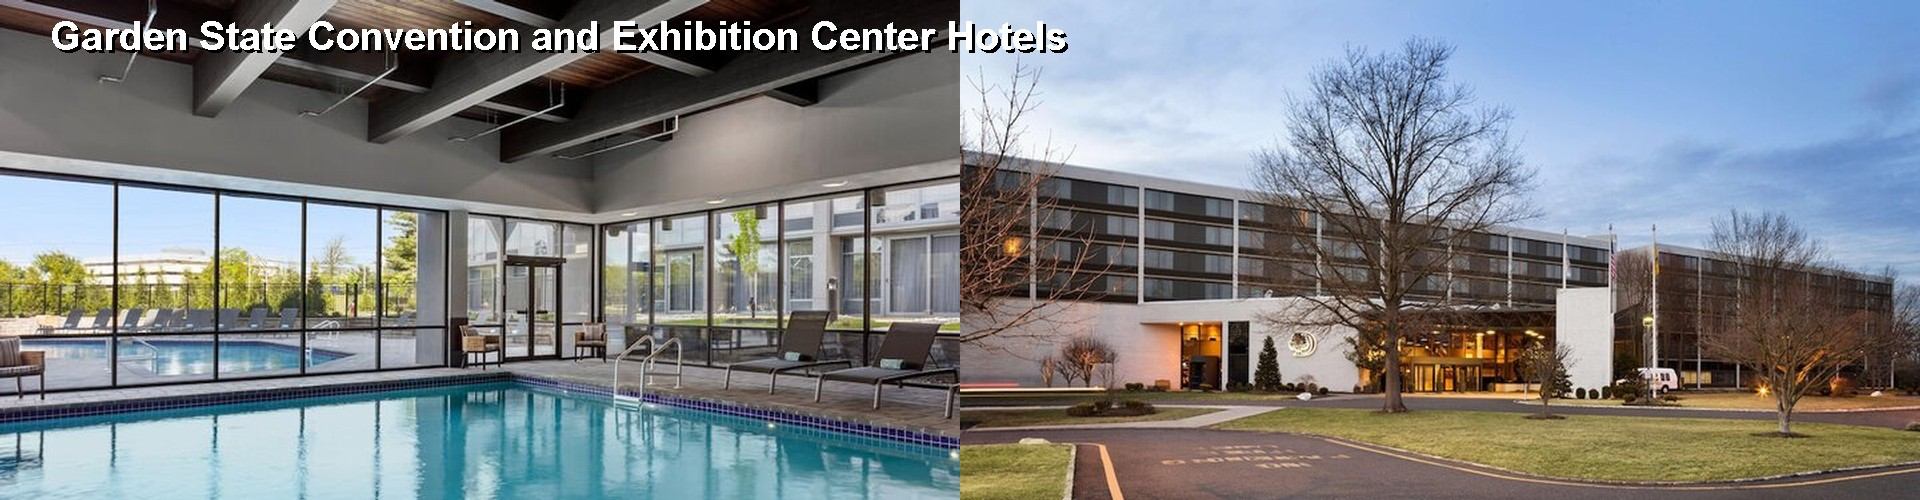 5 Best Hotels near Garden State Convention and Exhibition Center